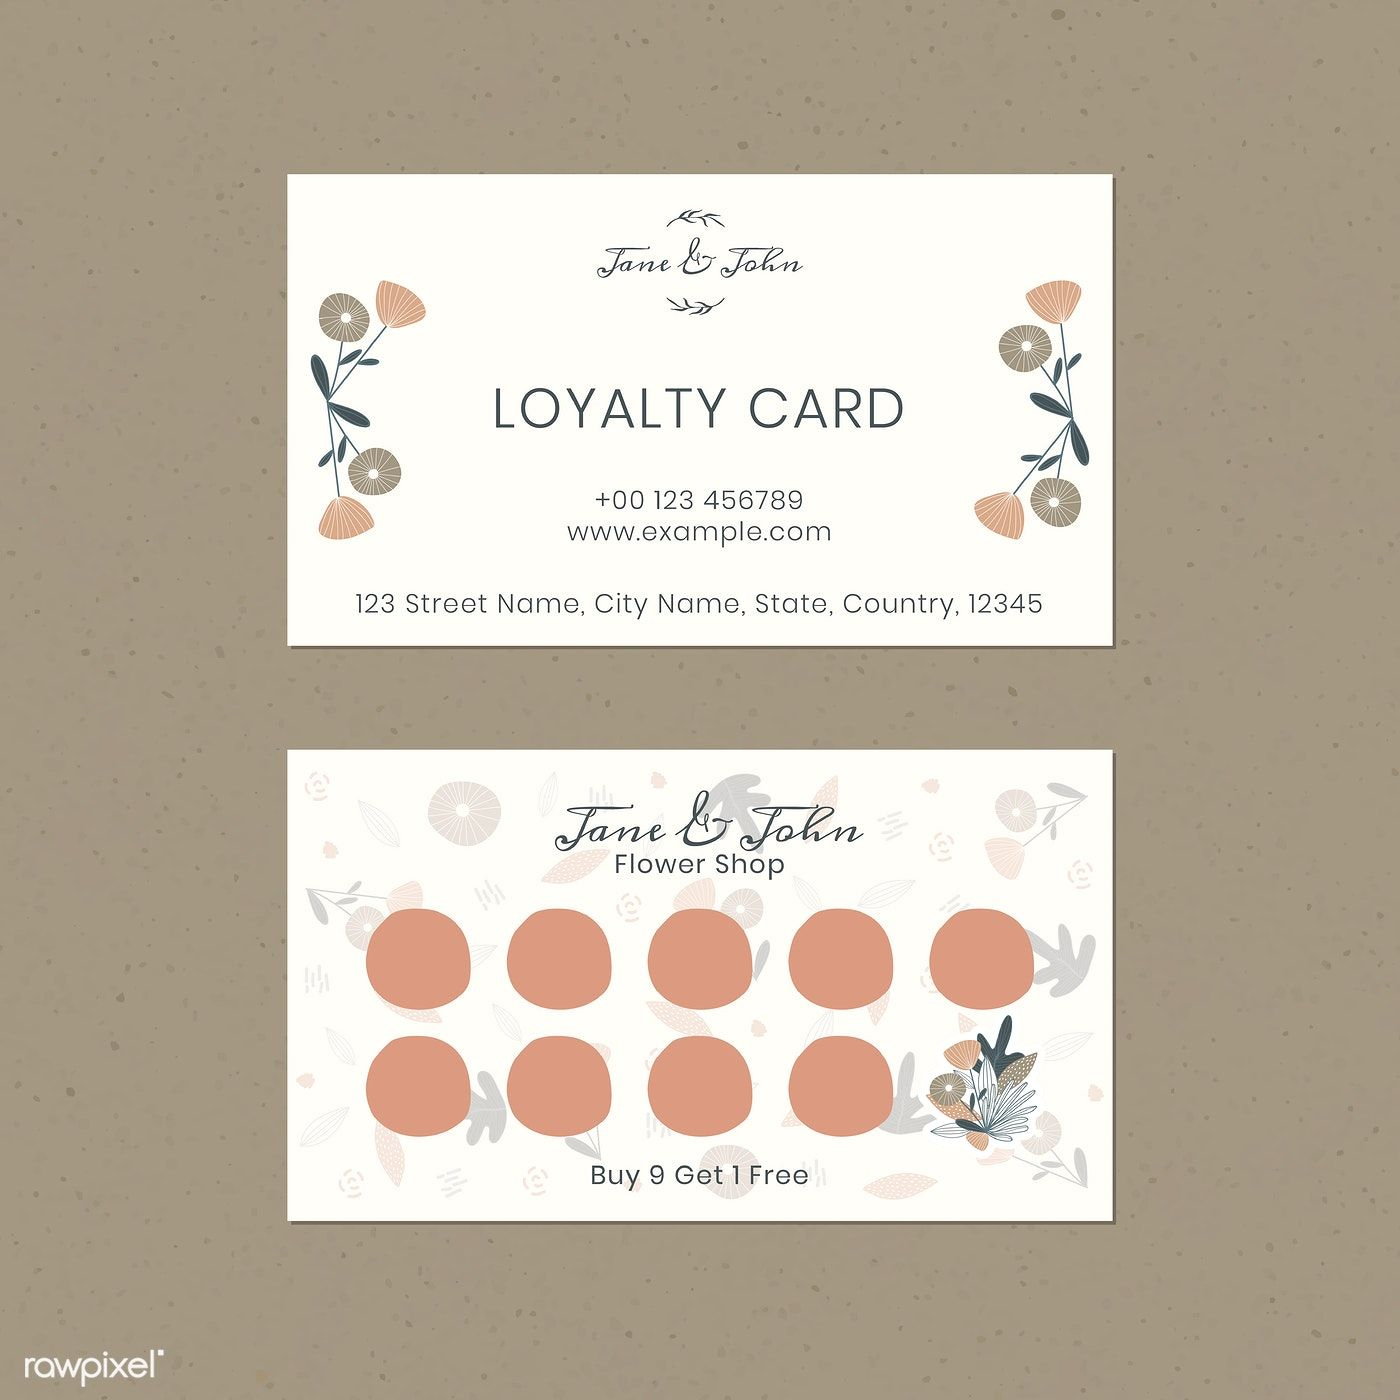 Download Premium Vector Of Floral Loyalty Card Design Vector 1218416 Loyalty Card Design Loyalty Card Loyalty Card Template